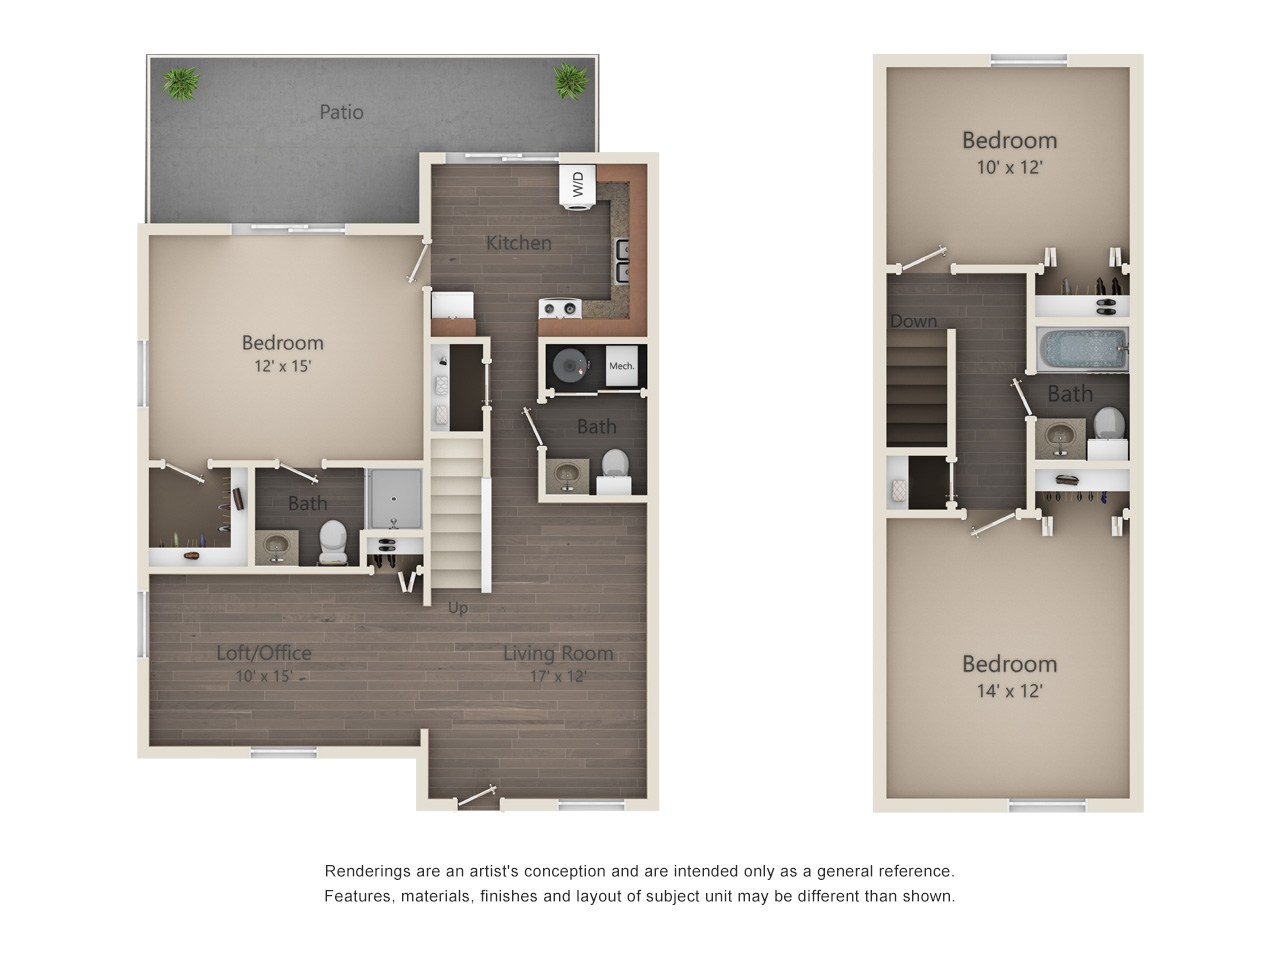 12 x 15 living room design page 3 of 3 oh style - 10 by 10 room ...